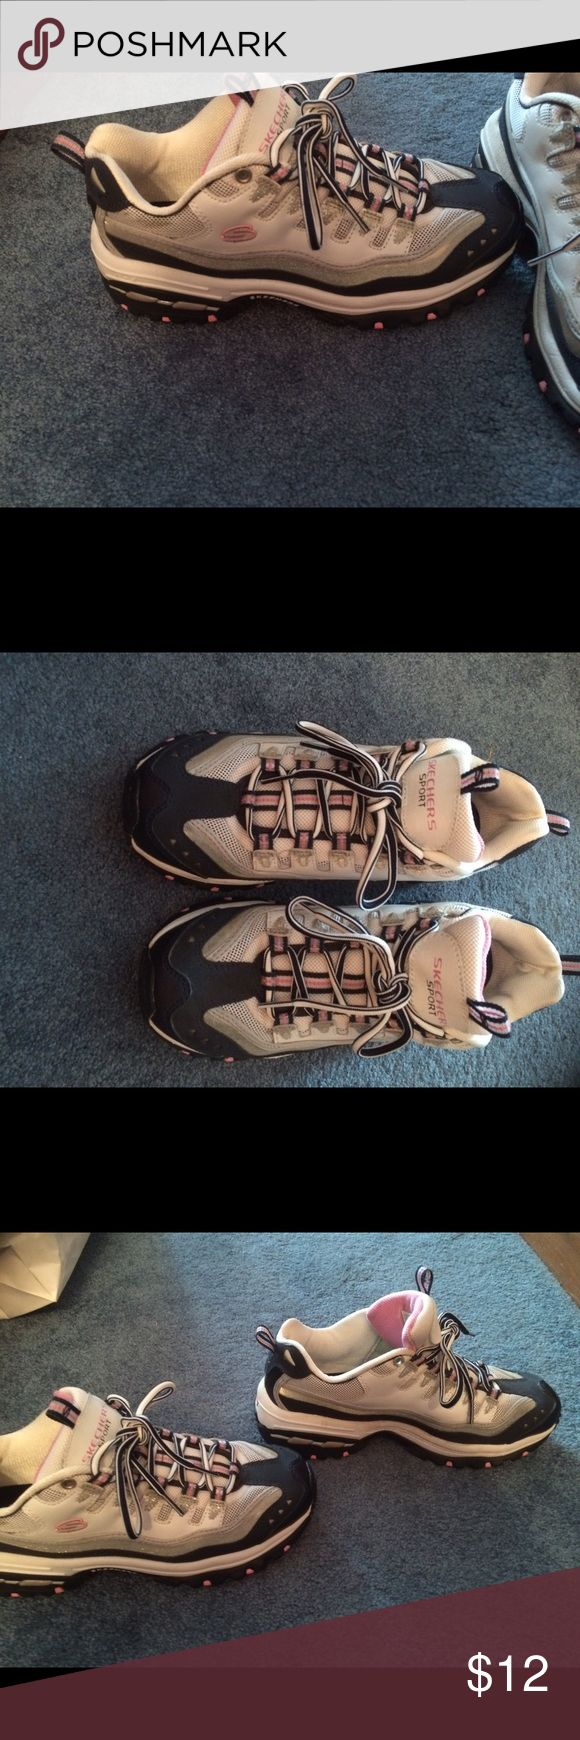 Sketcher sneakers sport size 9 navy n pink Like new Skechers Shoes Athletic Shoes